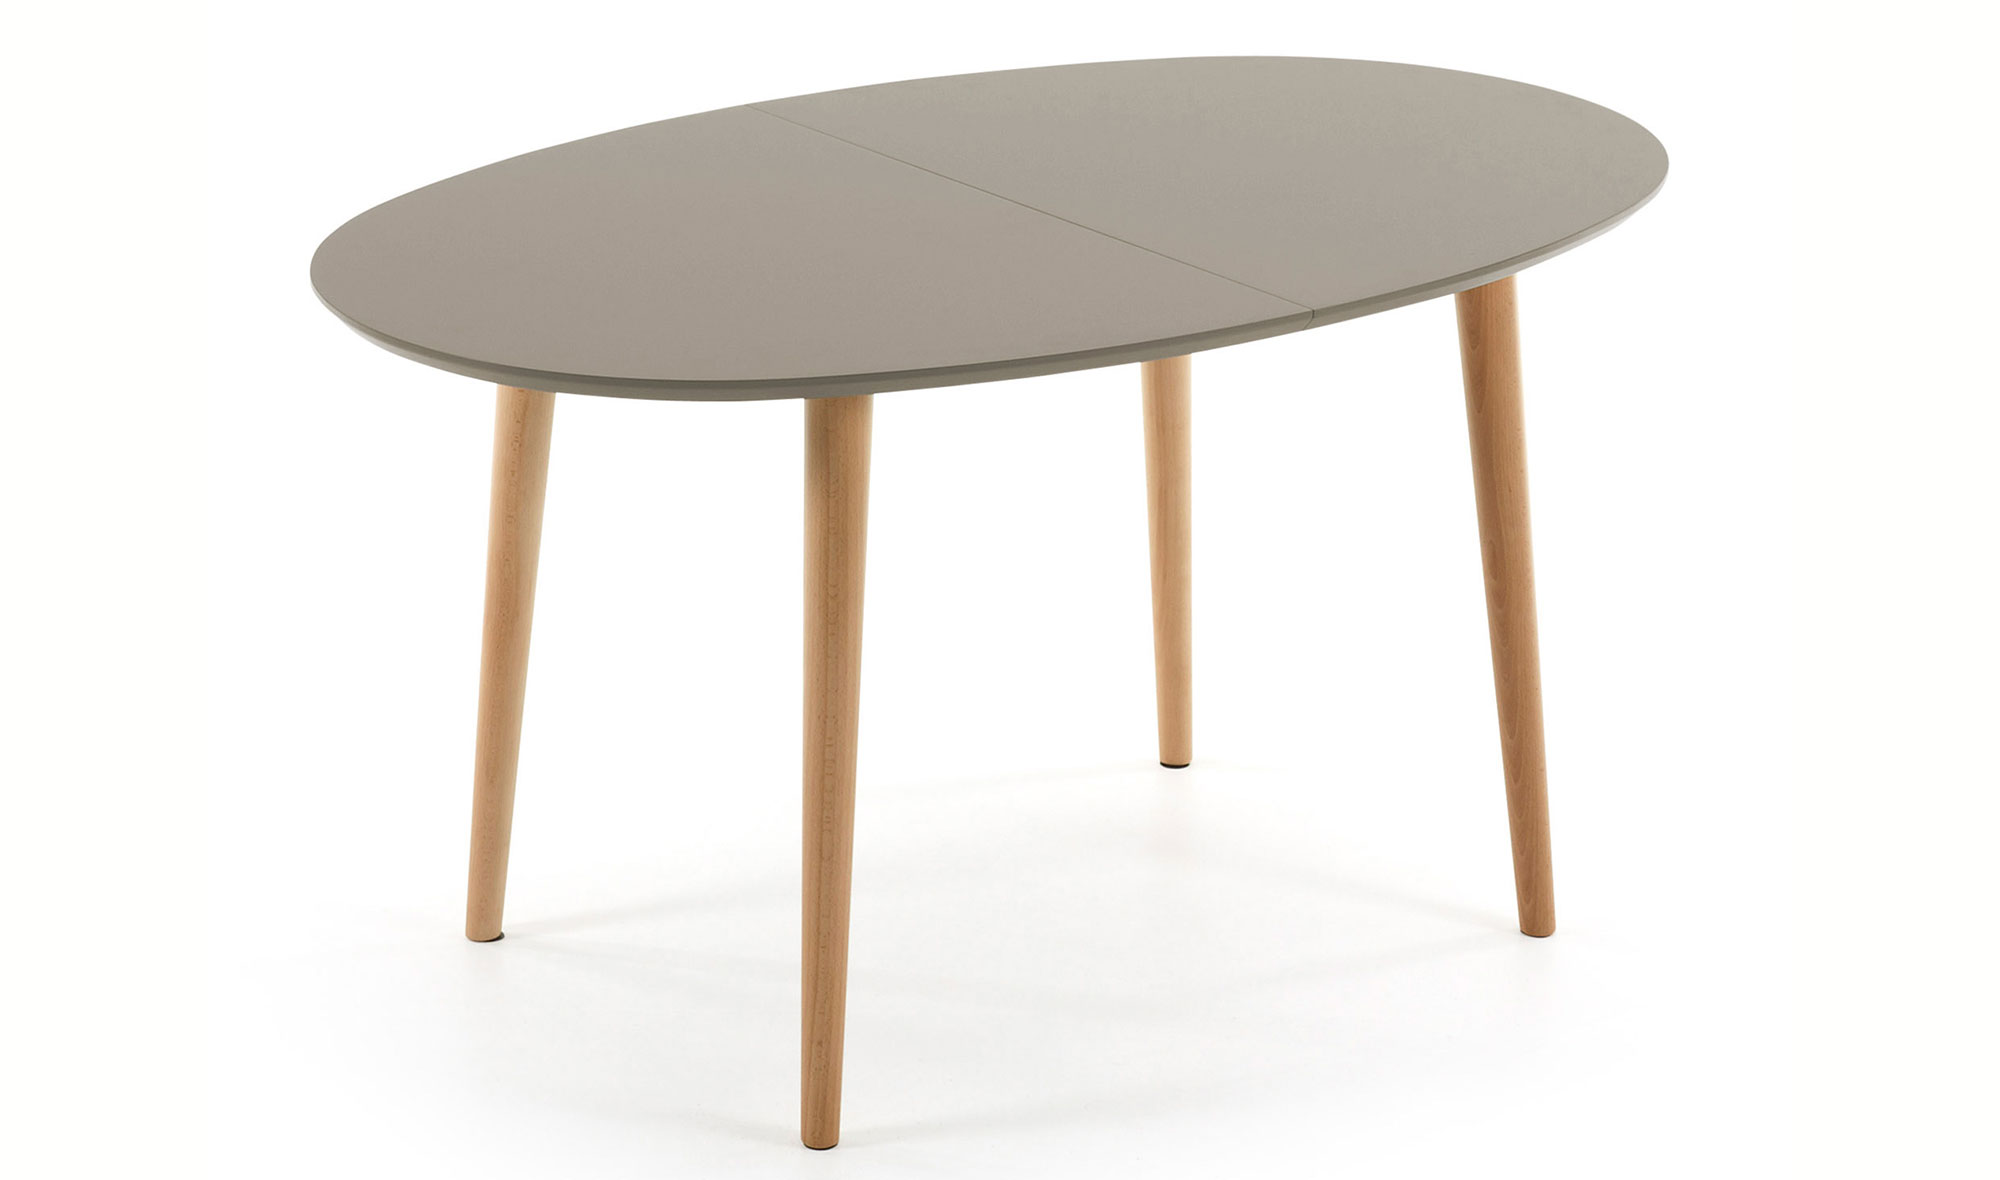 OQUI  MESA OVAL 140(220) EXT MADERA NAT LAC MATE MARRON